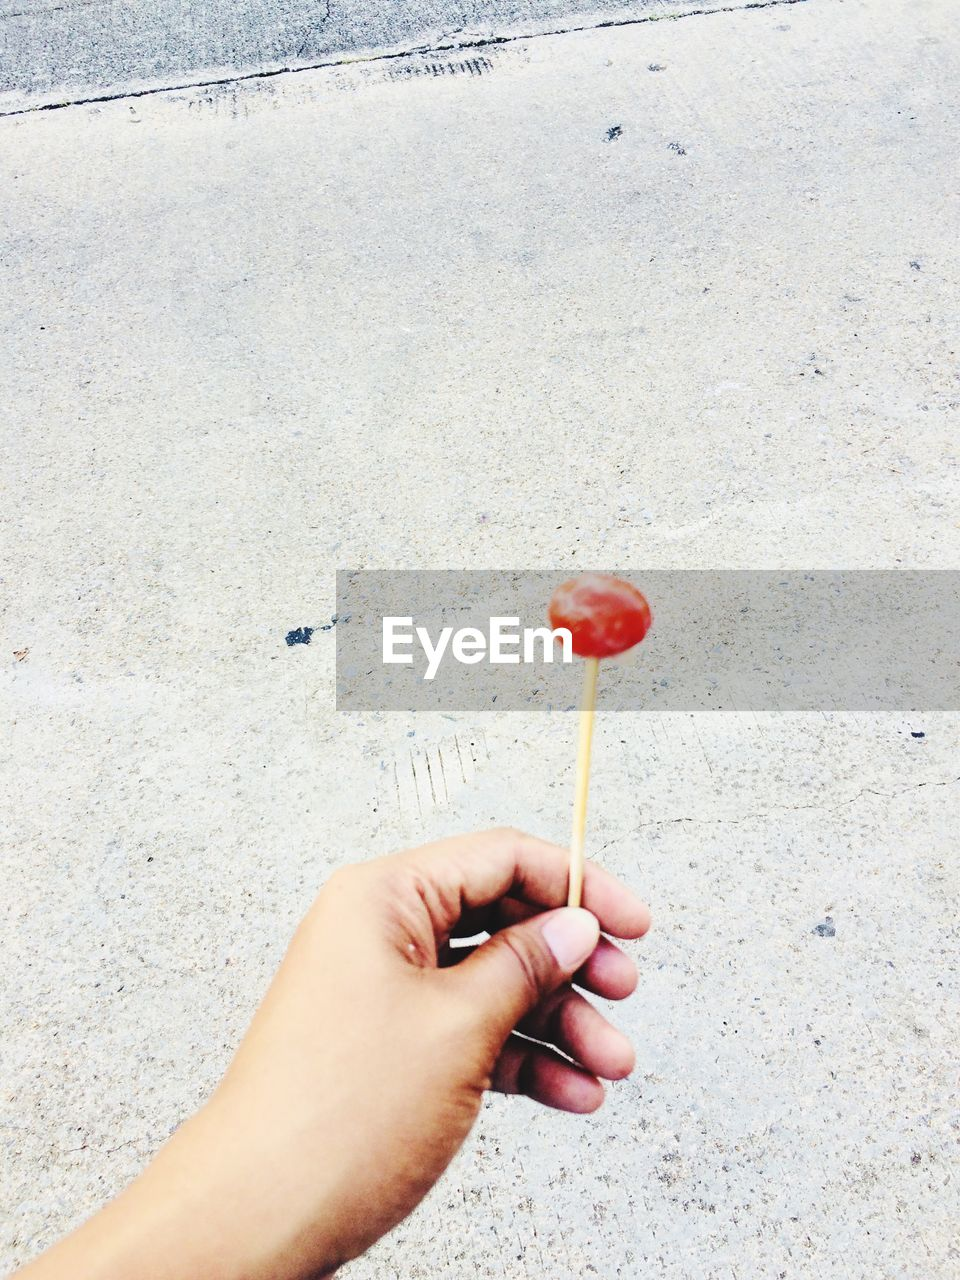 hand, human hand, human body part, one person, holding, lollipop, real people, food, food and drink, candy, sweet, day, unrecognizable person, sweet food, human finger, red, personal perspective, finger, indulgence, outdoors, temptation